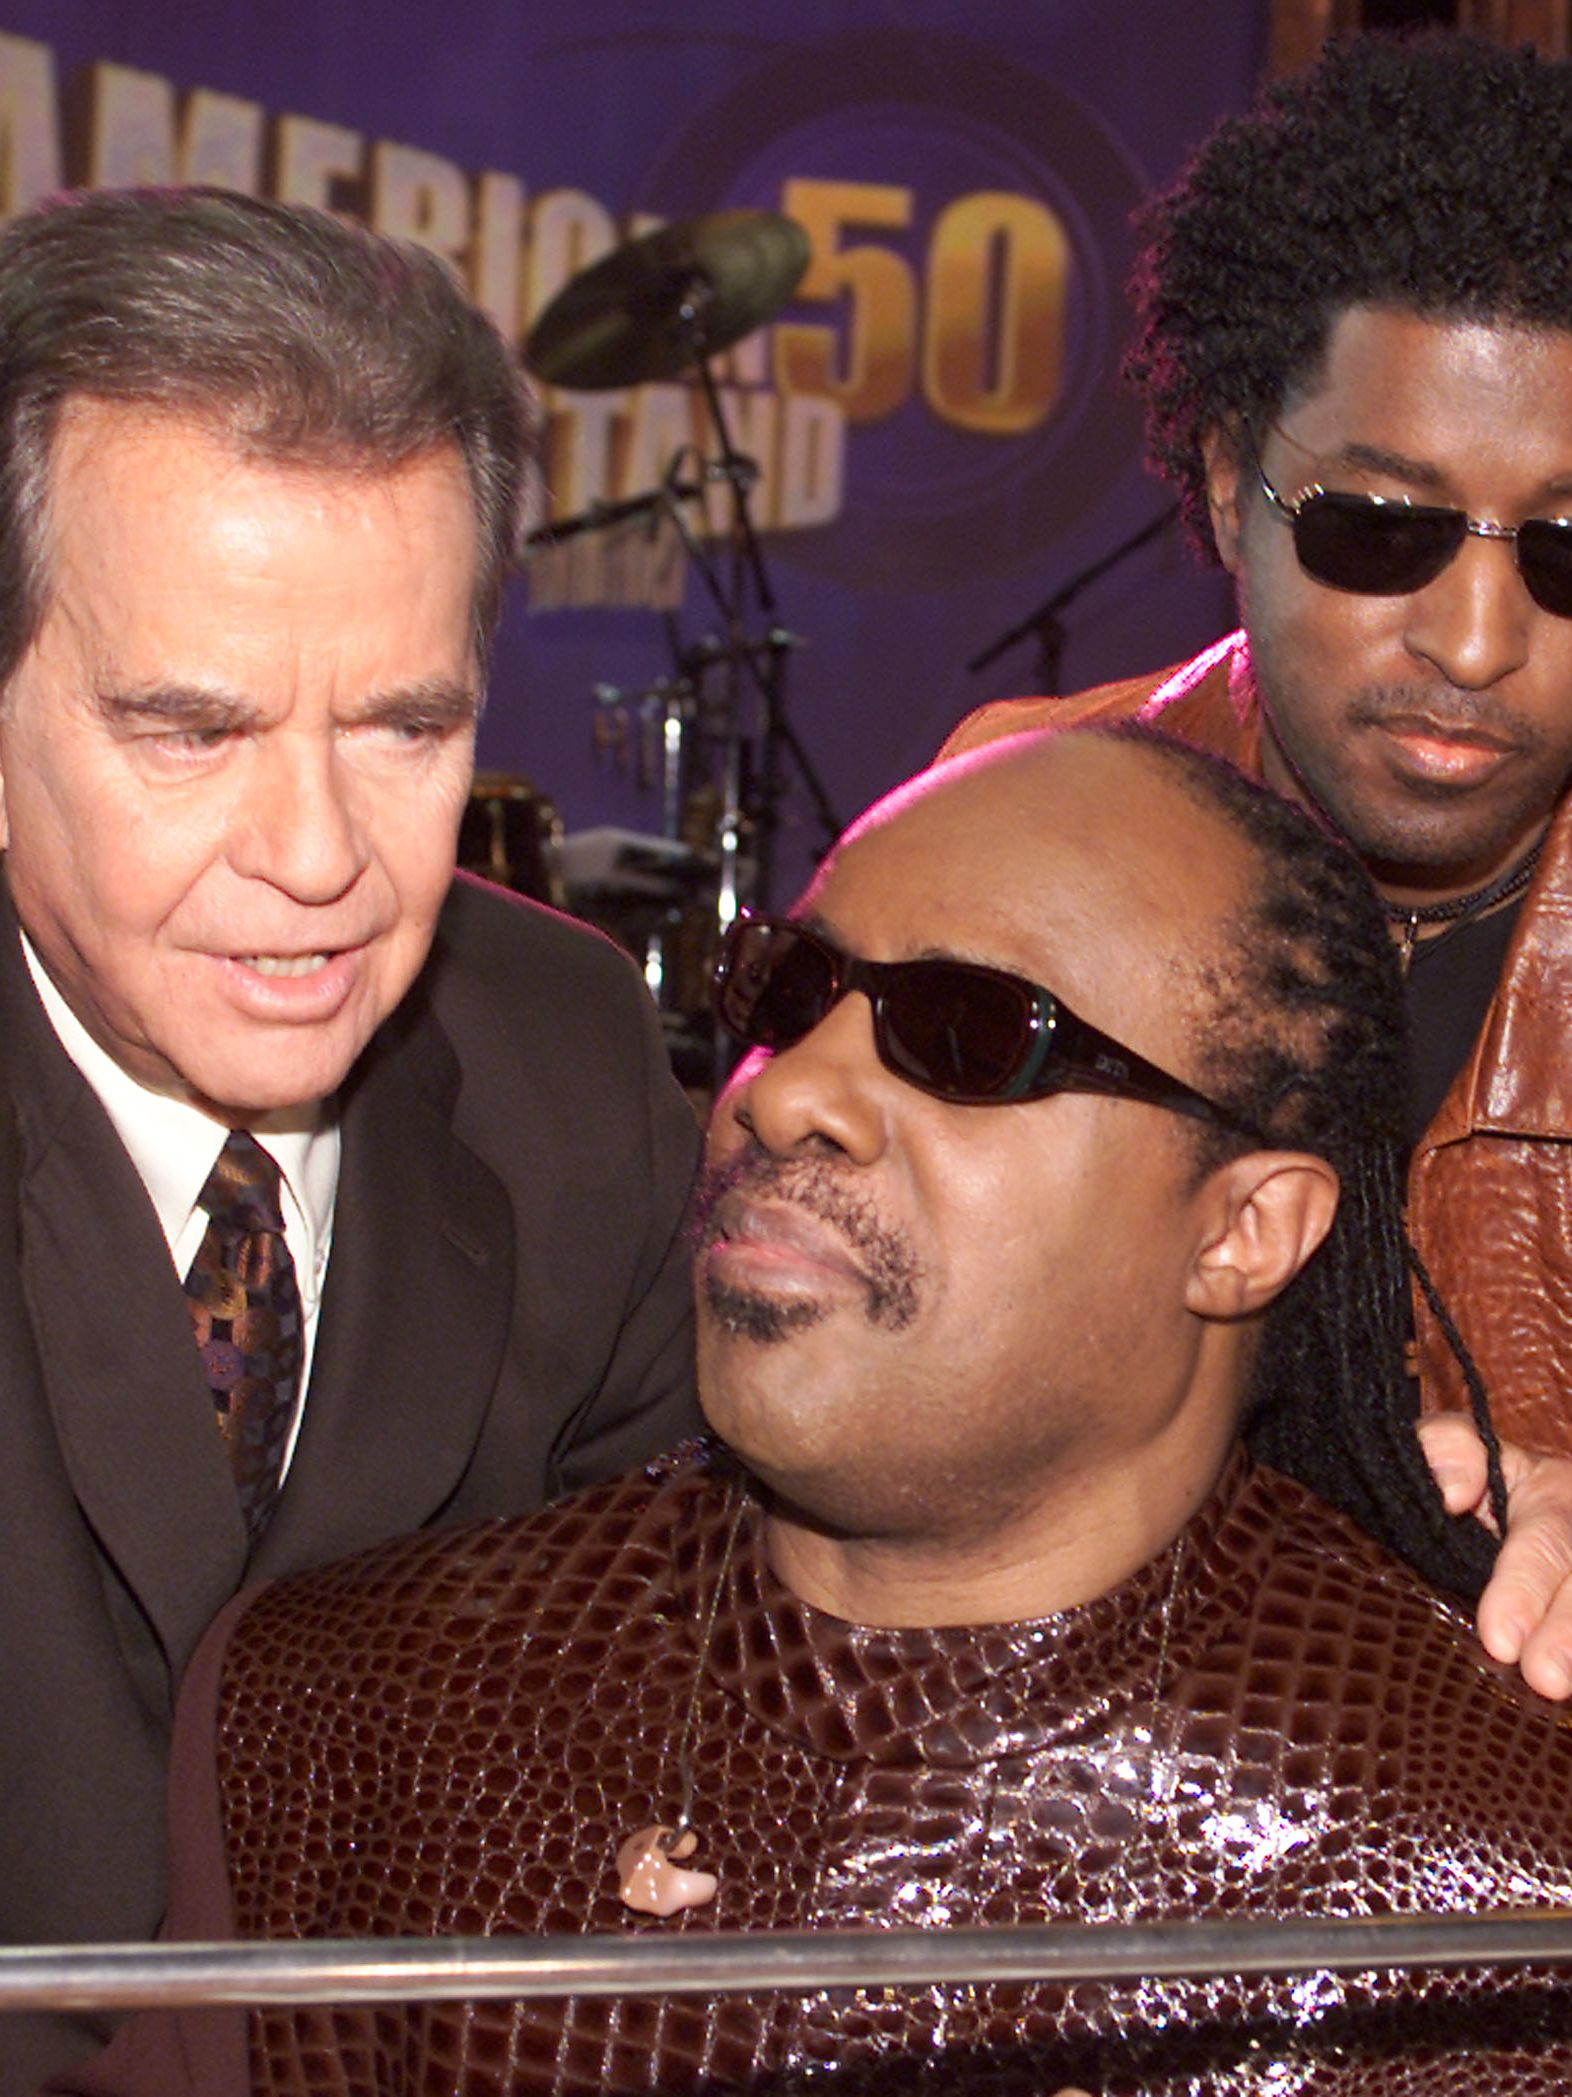 """Clark, Stevie Wonder and Babyface at the taping of """"American Bandstand's 50th...A Celebration"""" at the Pasadena Civic Auditorium in Pasadena, Ca. Saturday, April 20, 2002."""